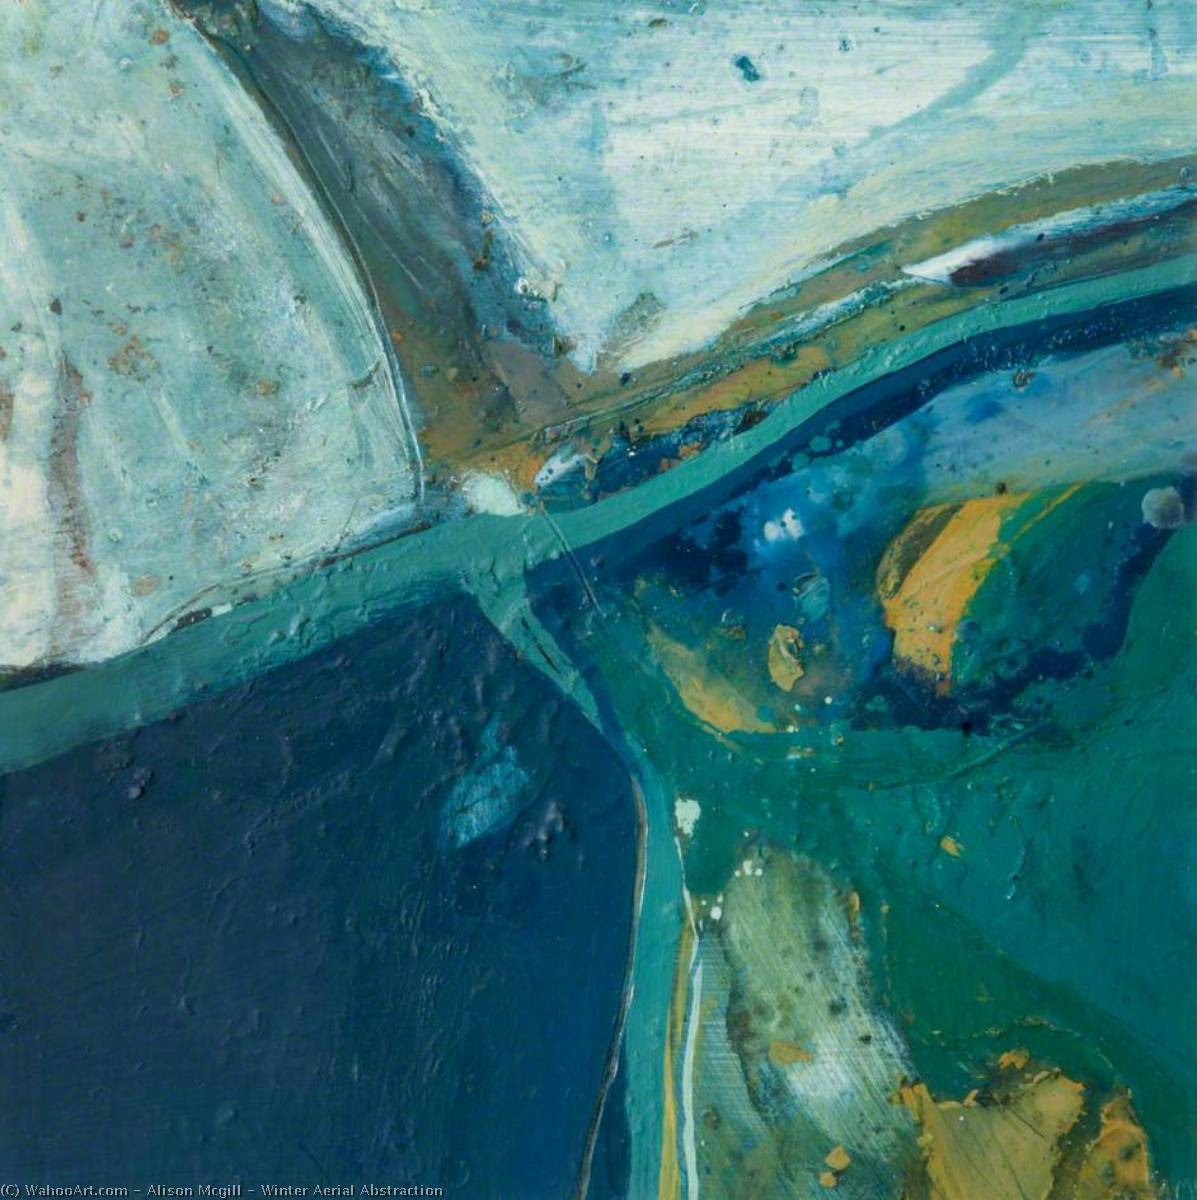 Winter Aerial Abstraction, 2000 by Alison Mcgill |  | WahooArt.com